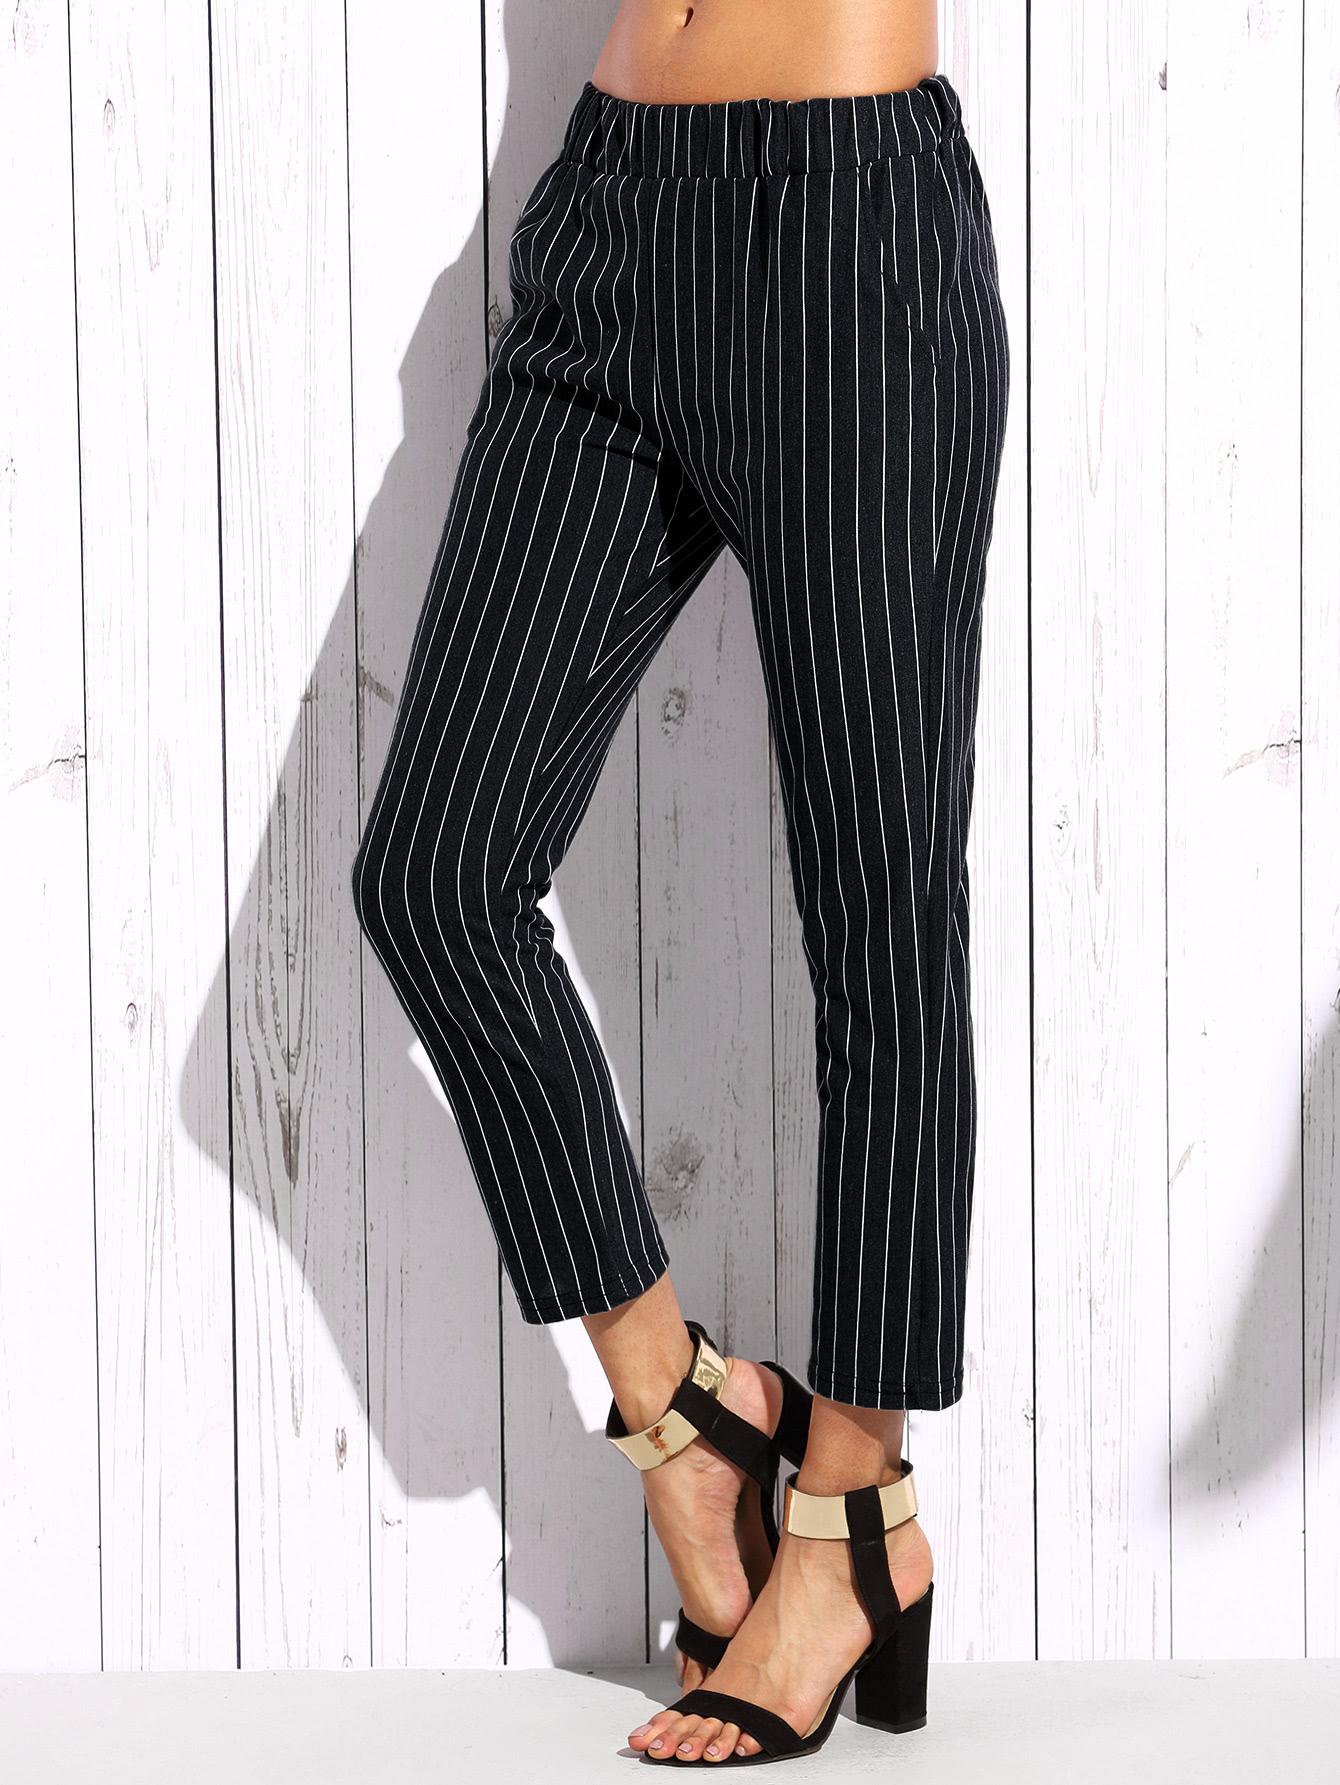 Vertical Striped Elastic Waist Pants kids elastic waist striped pants